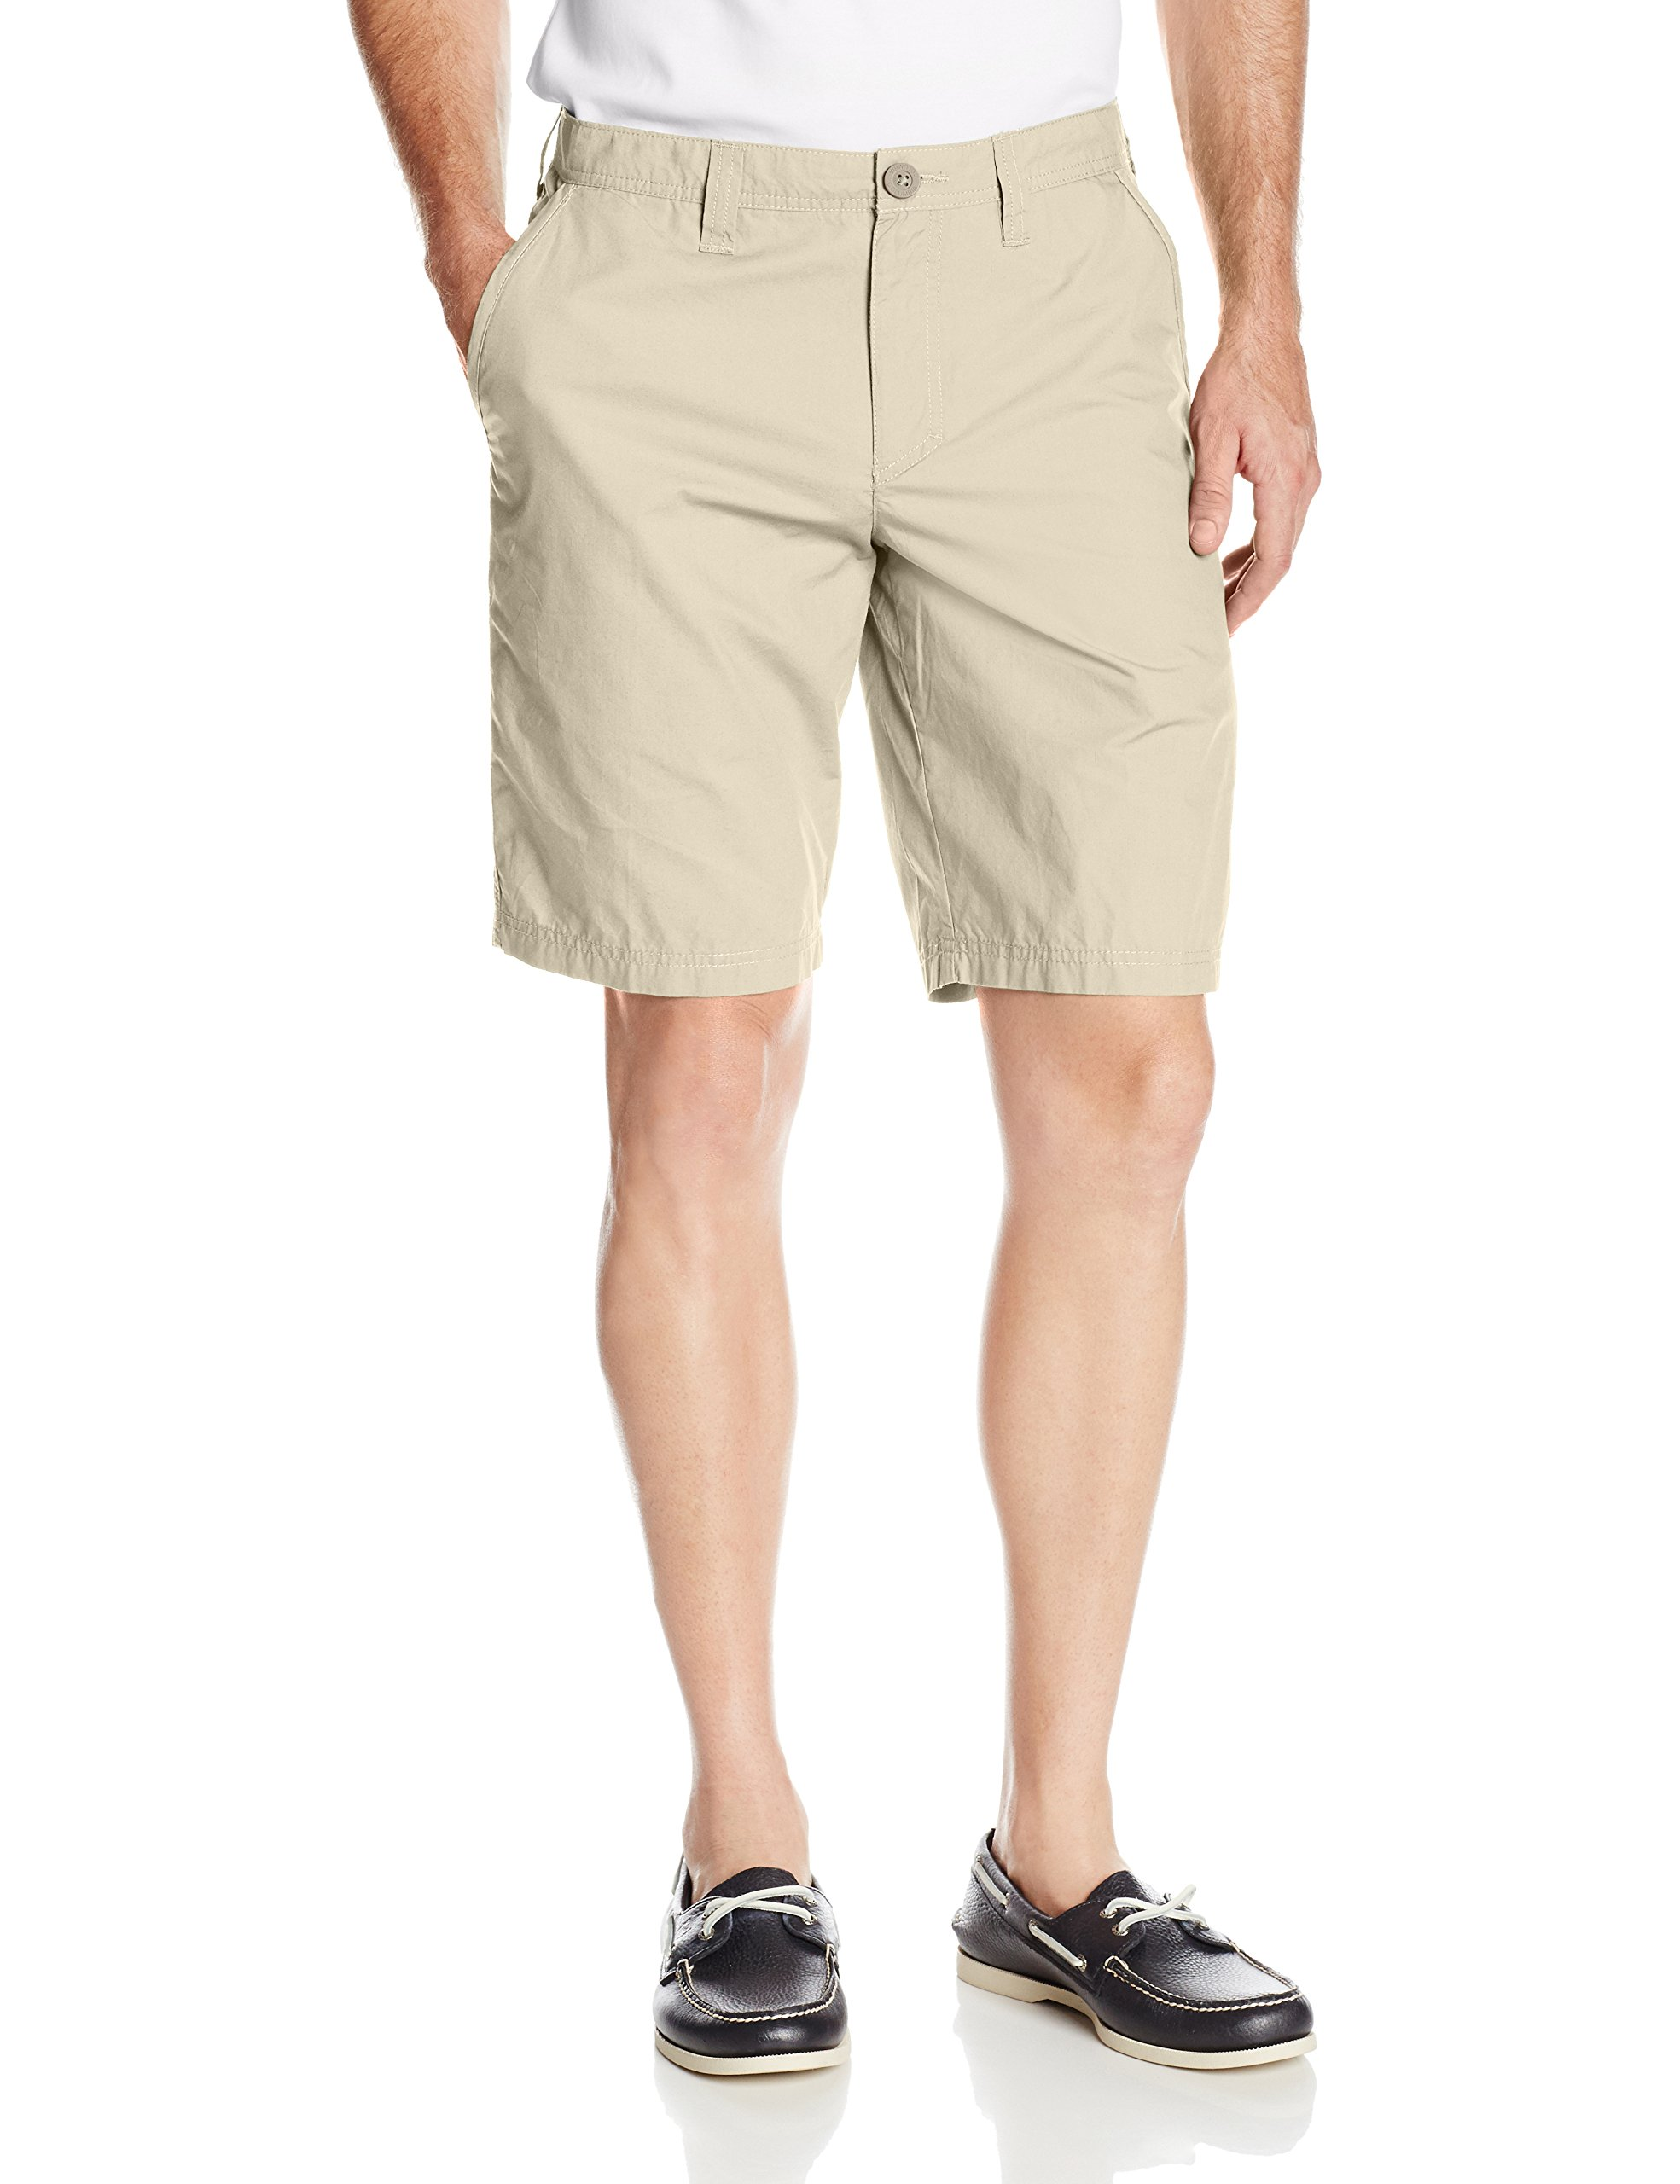 Columbia Men's Washed Out Short, Fossil, 32x8